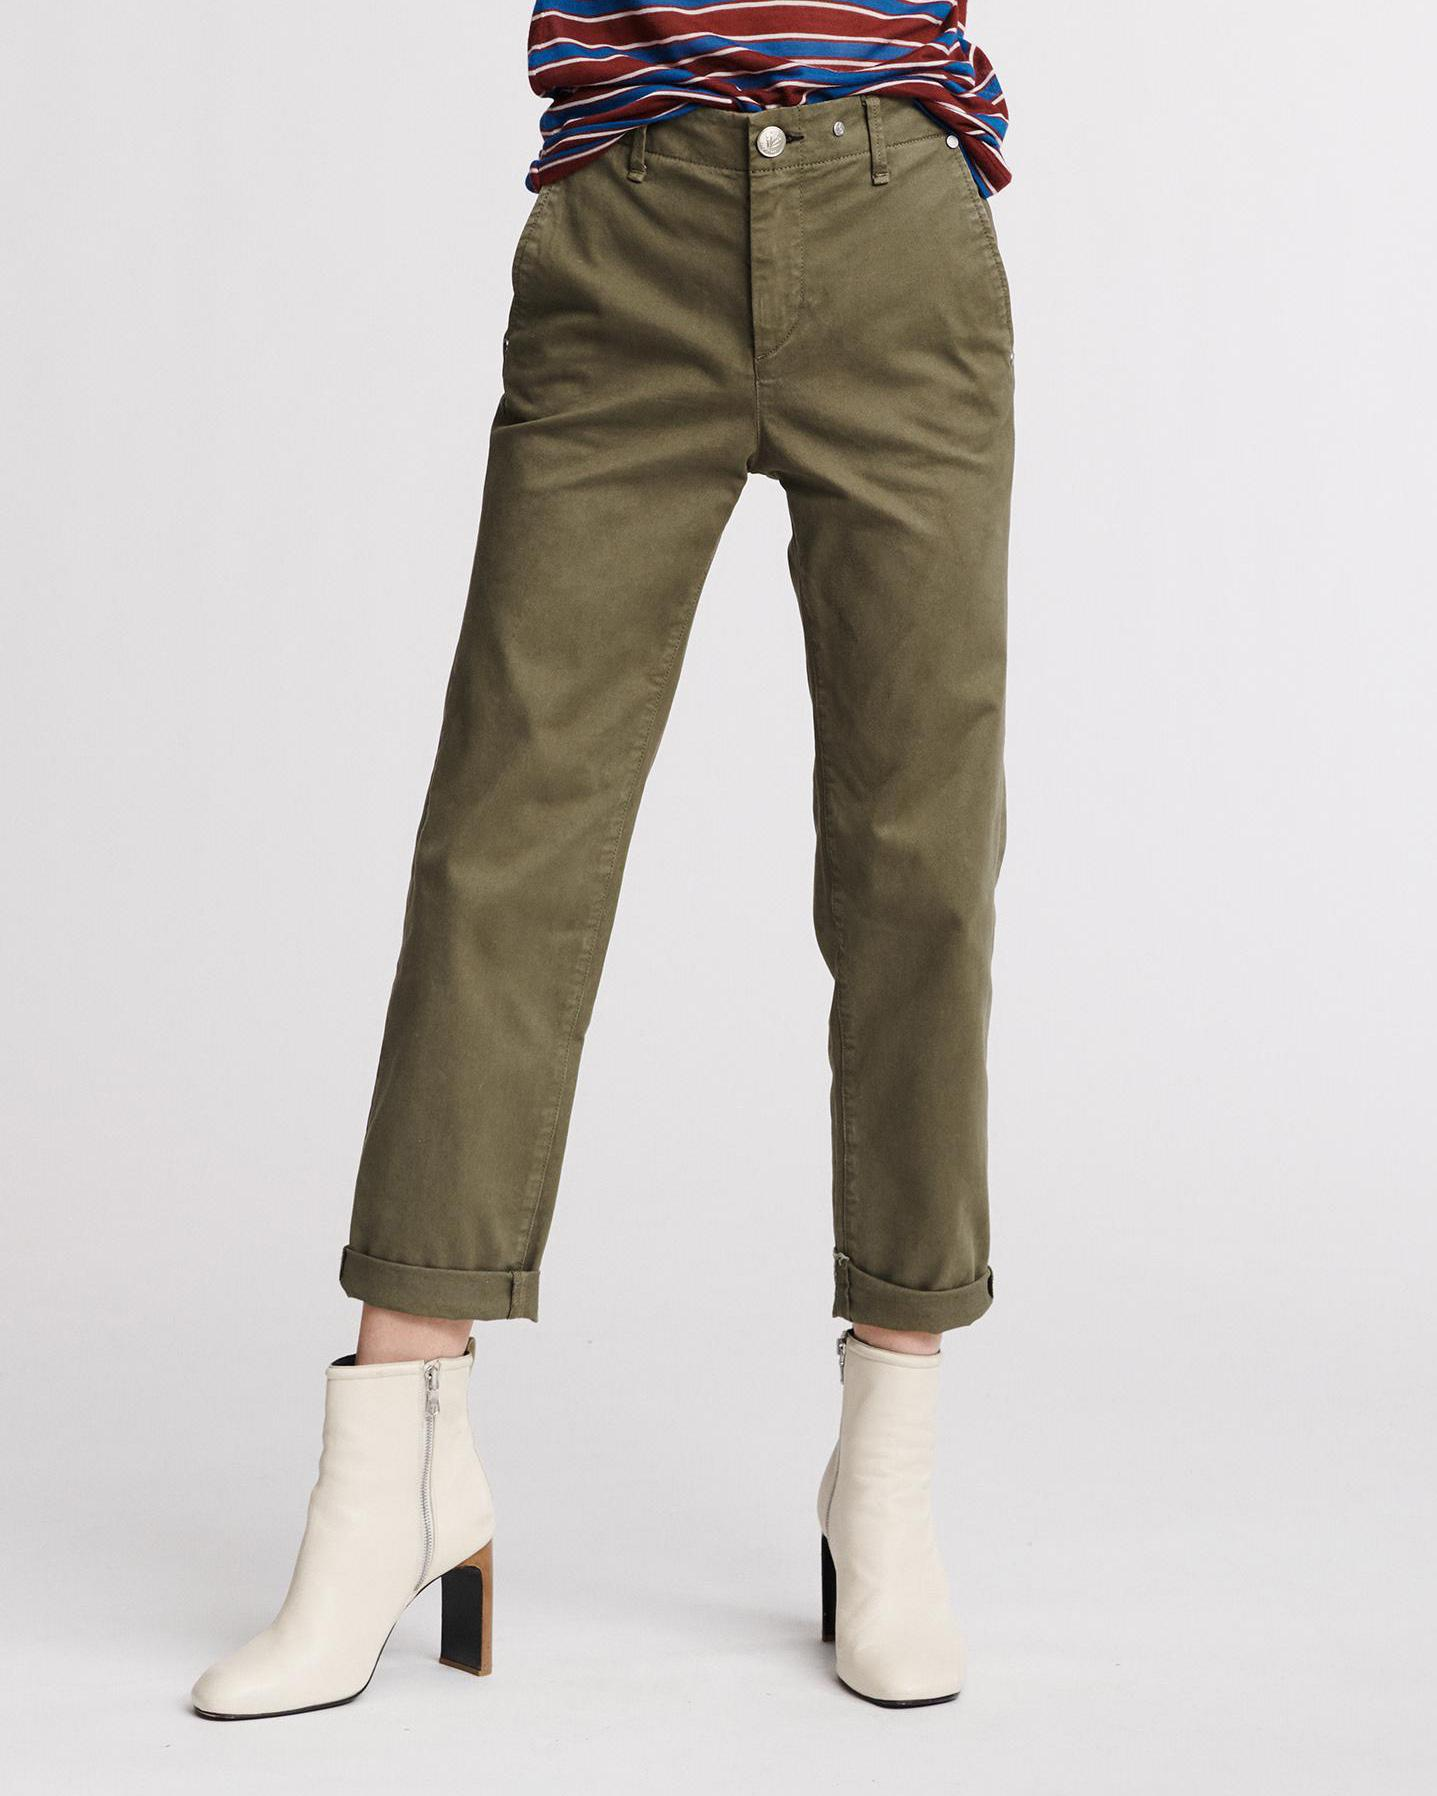 BUCKLEY CHINO